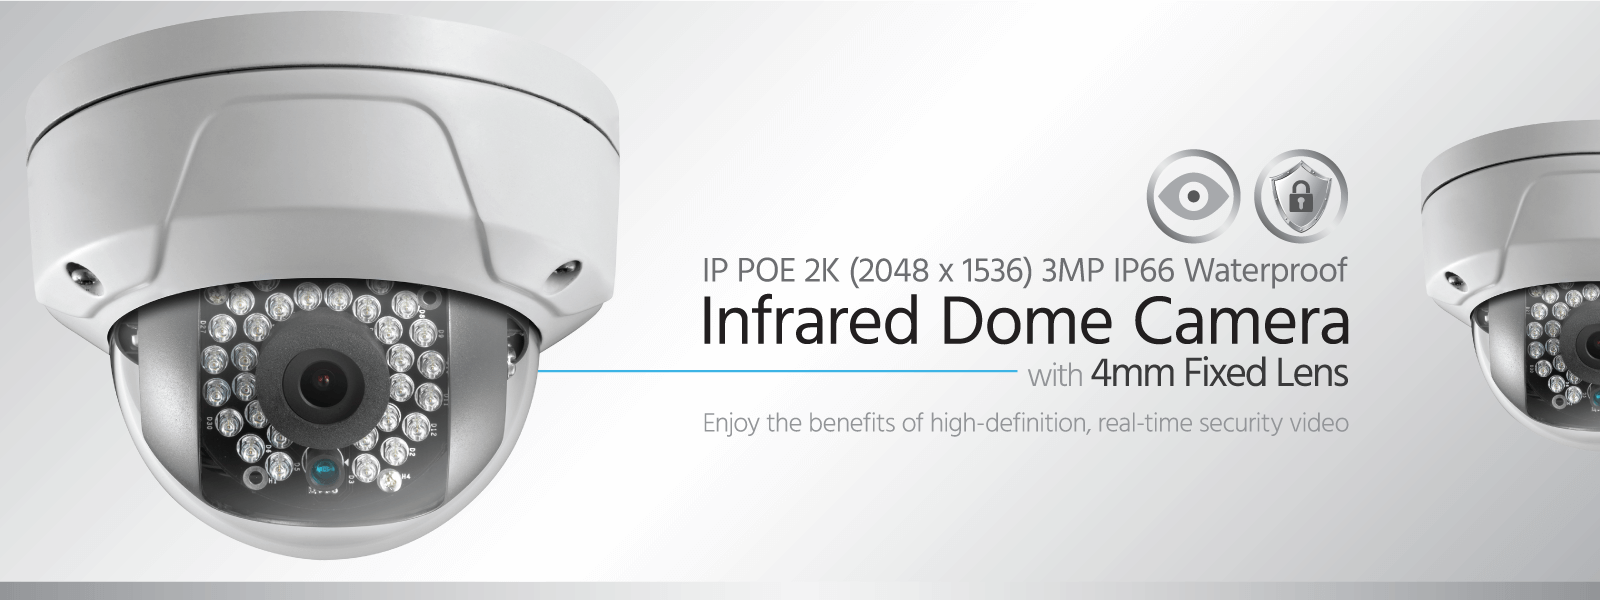 IP PoE Infrared Dome Camera